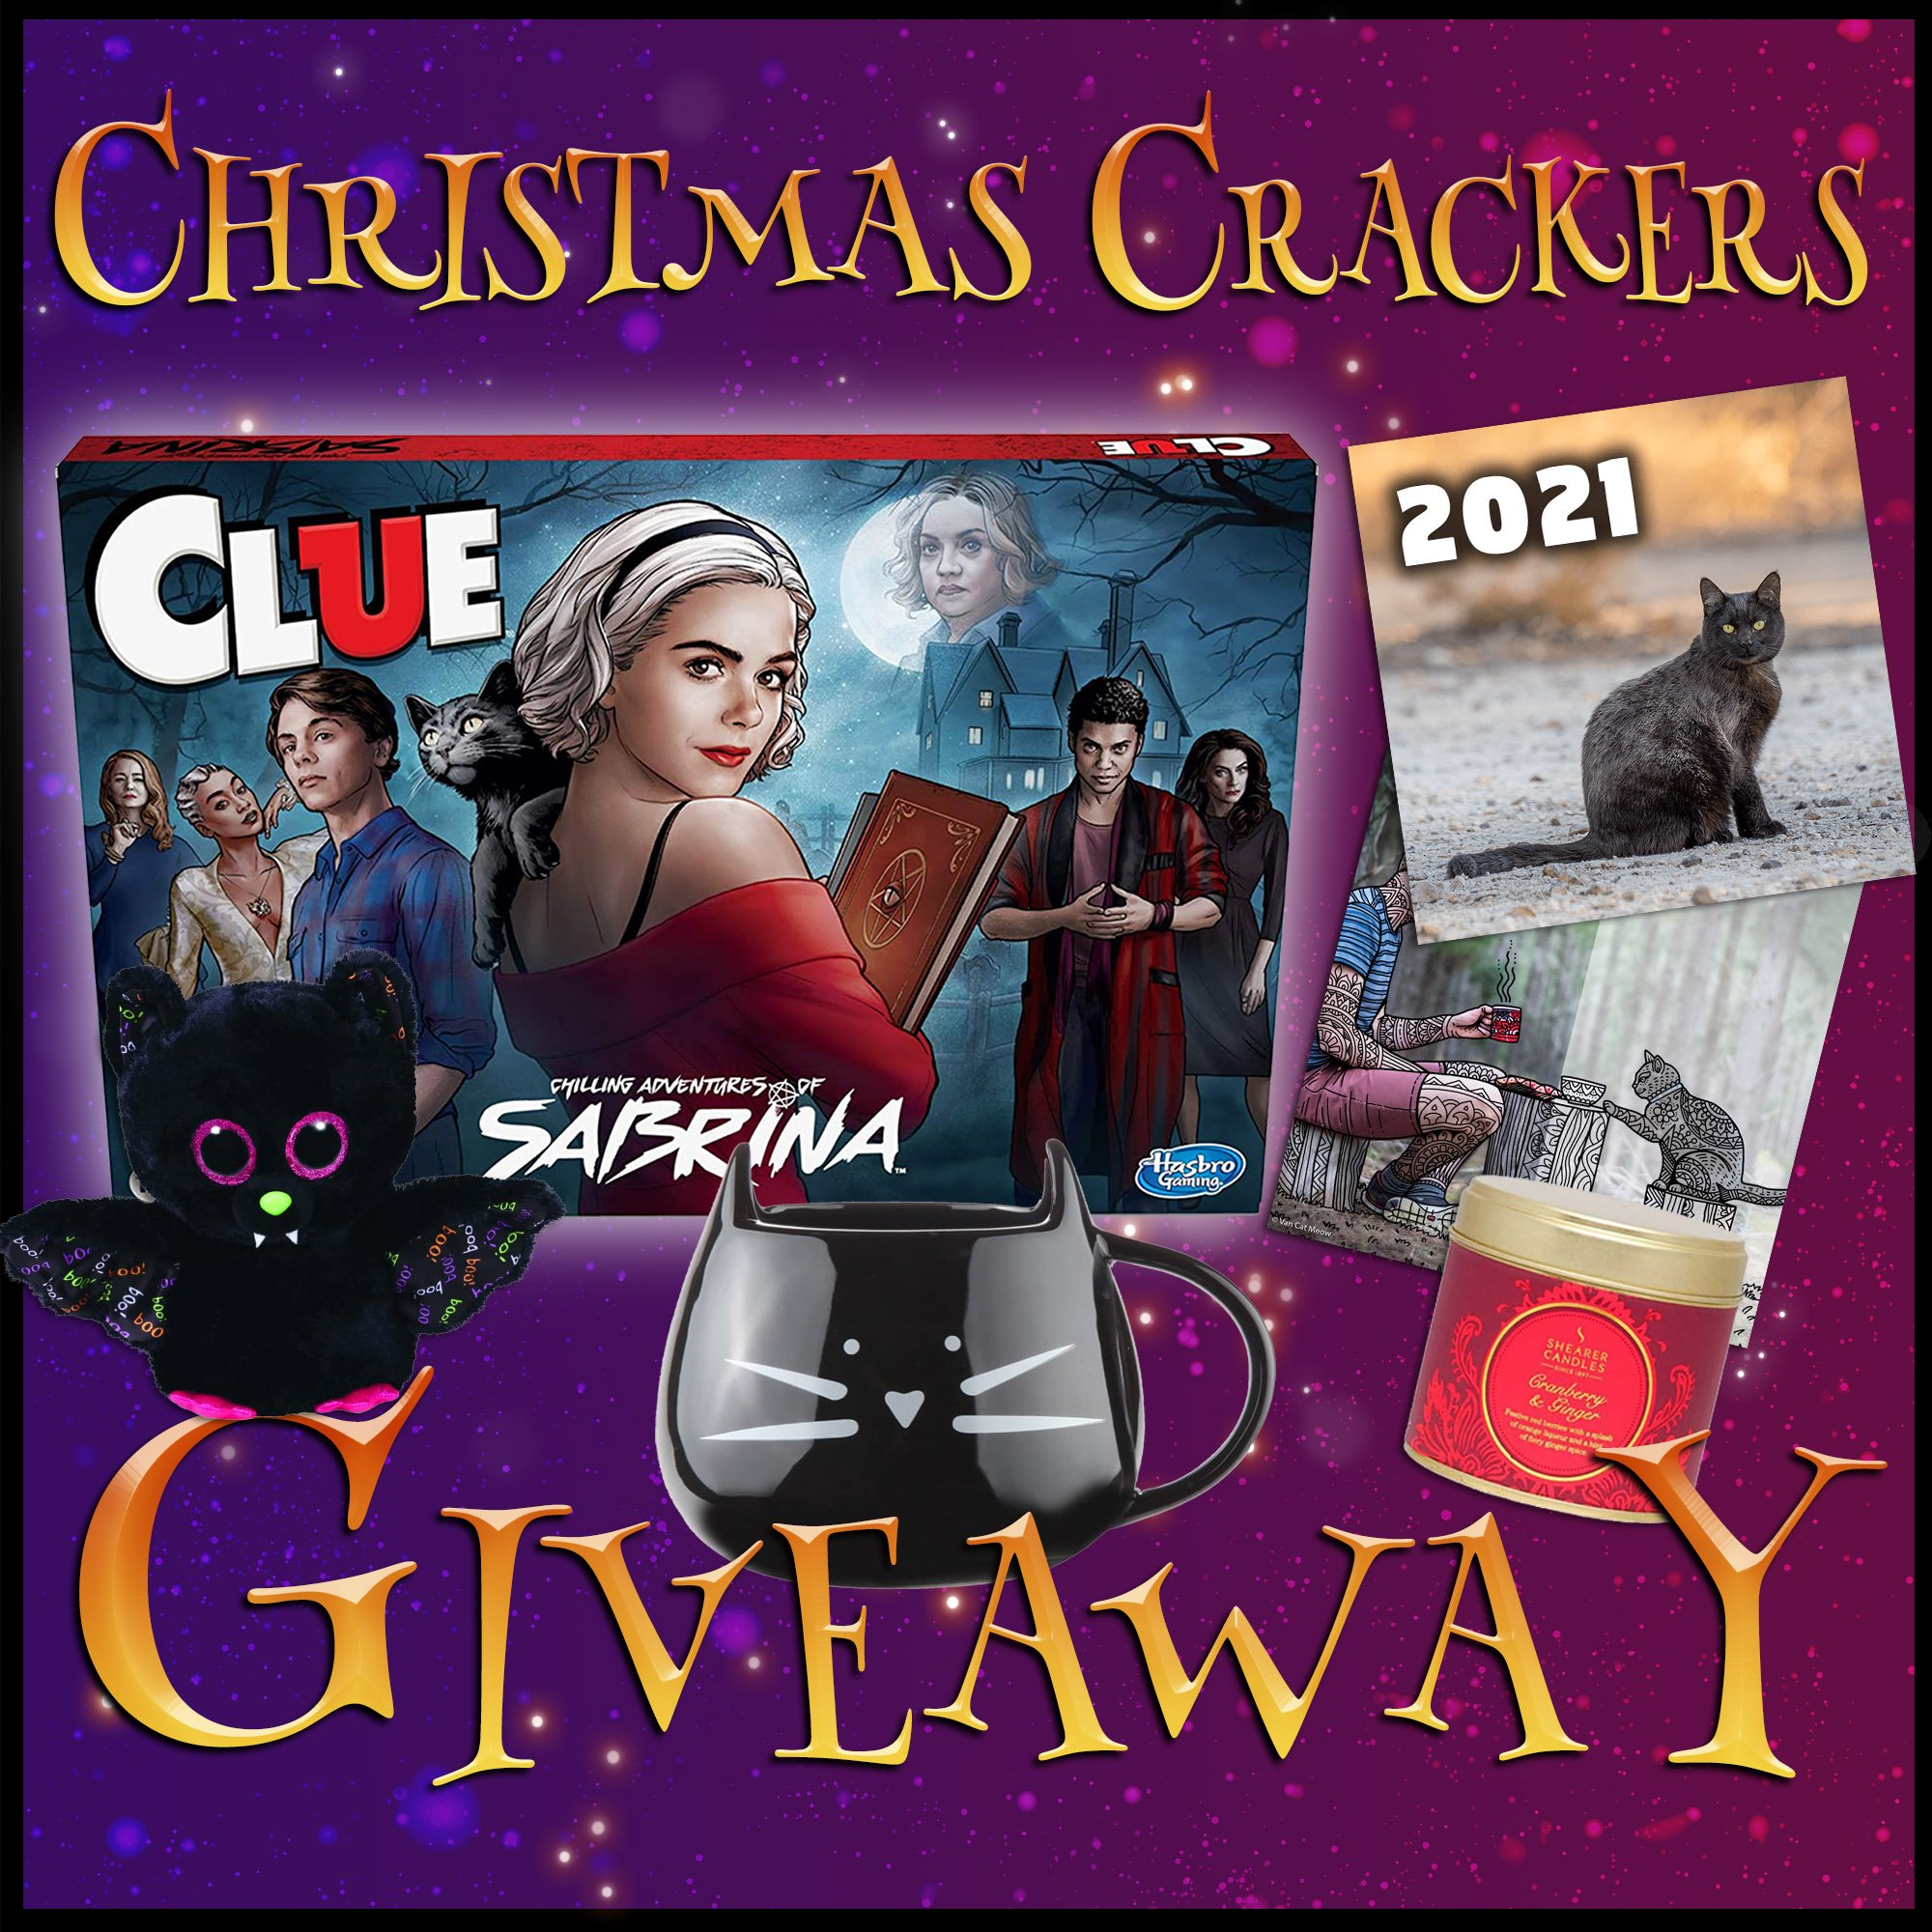 Win this wonderful prize pack